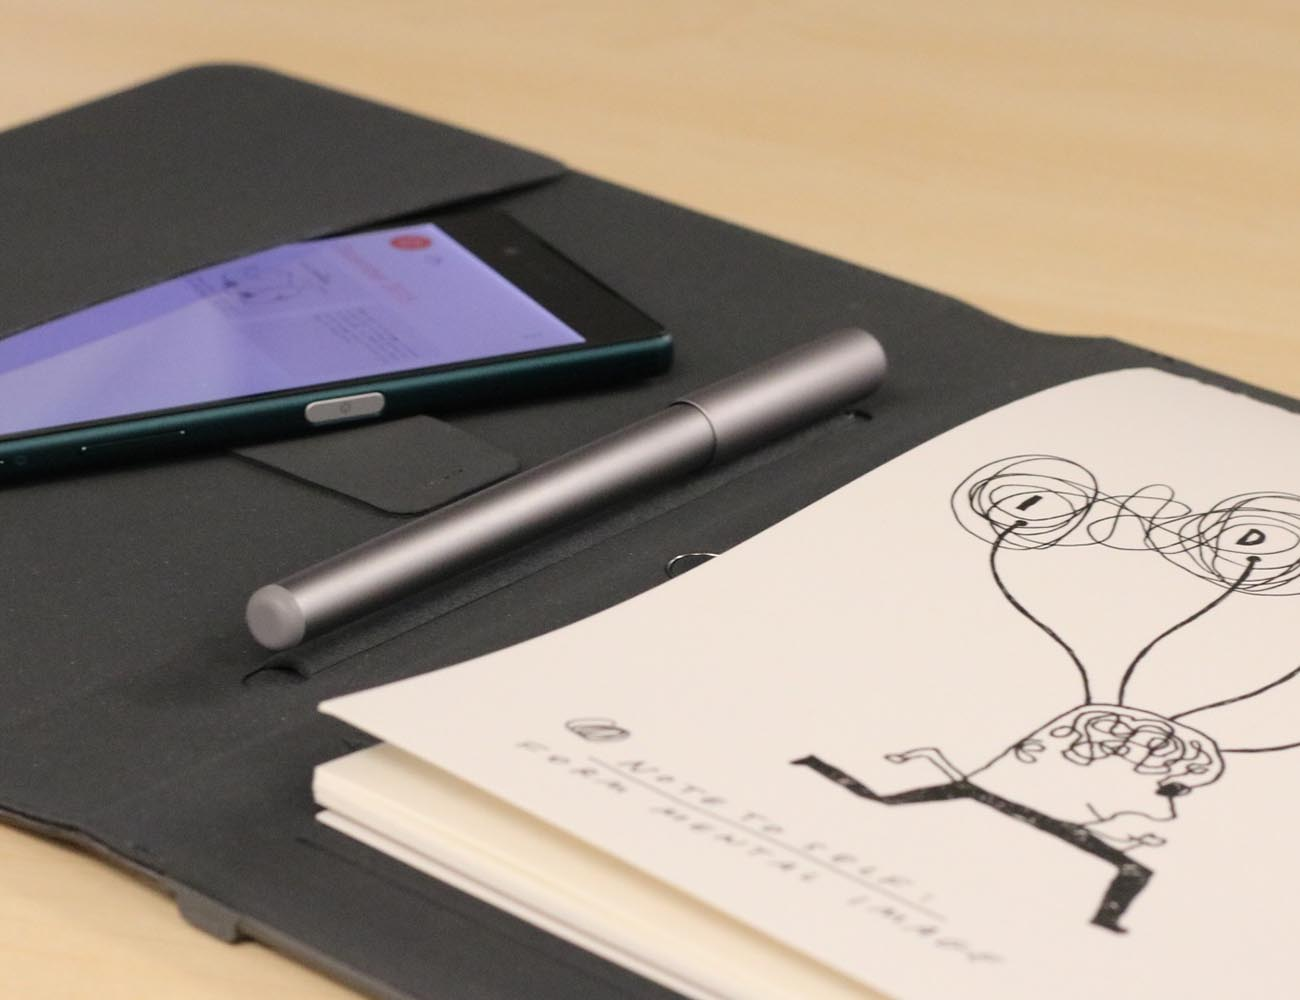 Wacom Bamboo Spark – Take Notes From Paper to Cloud